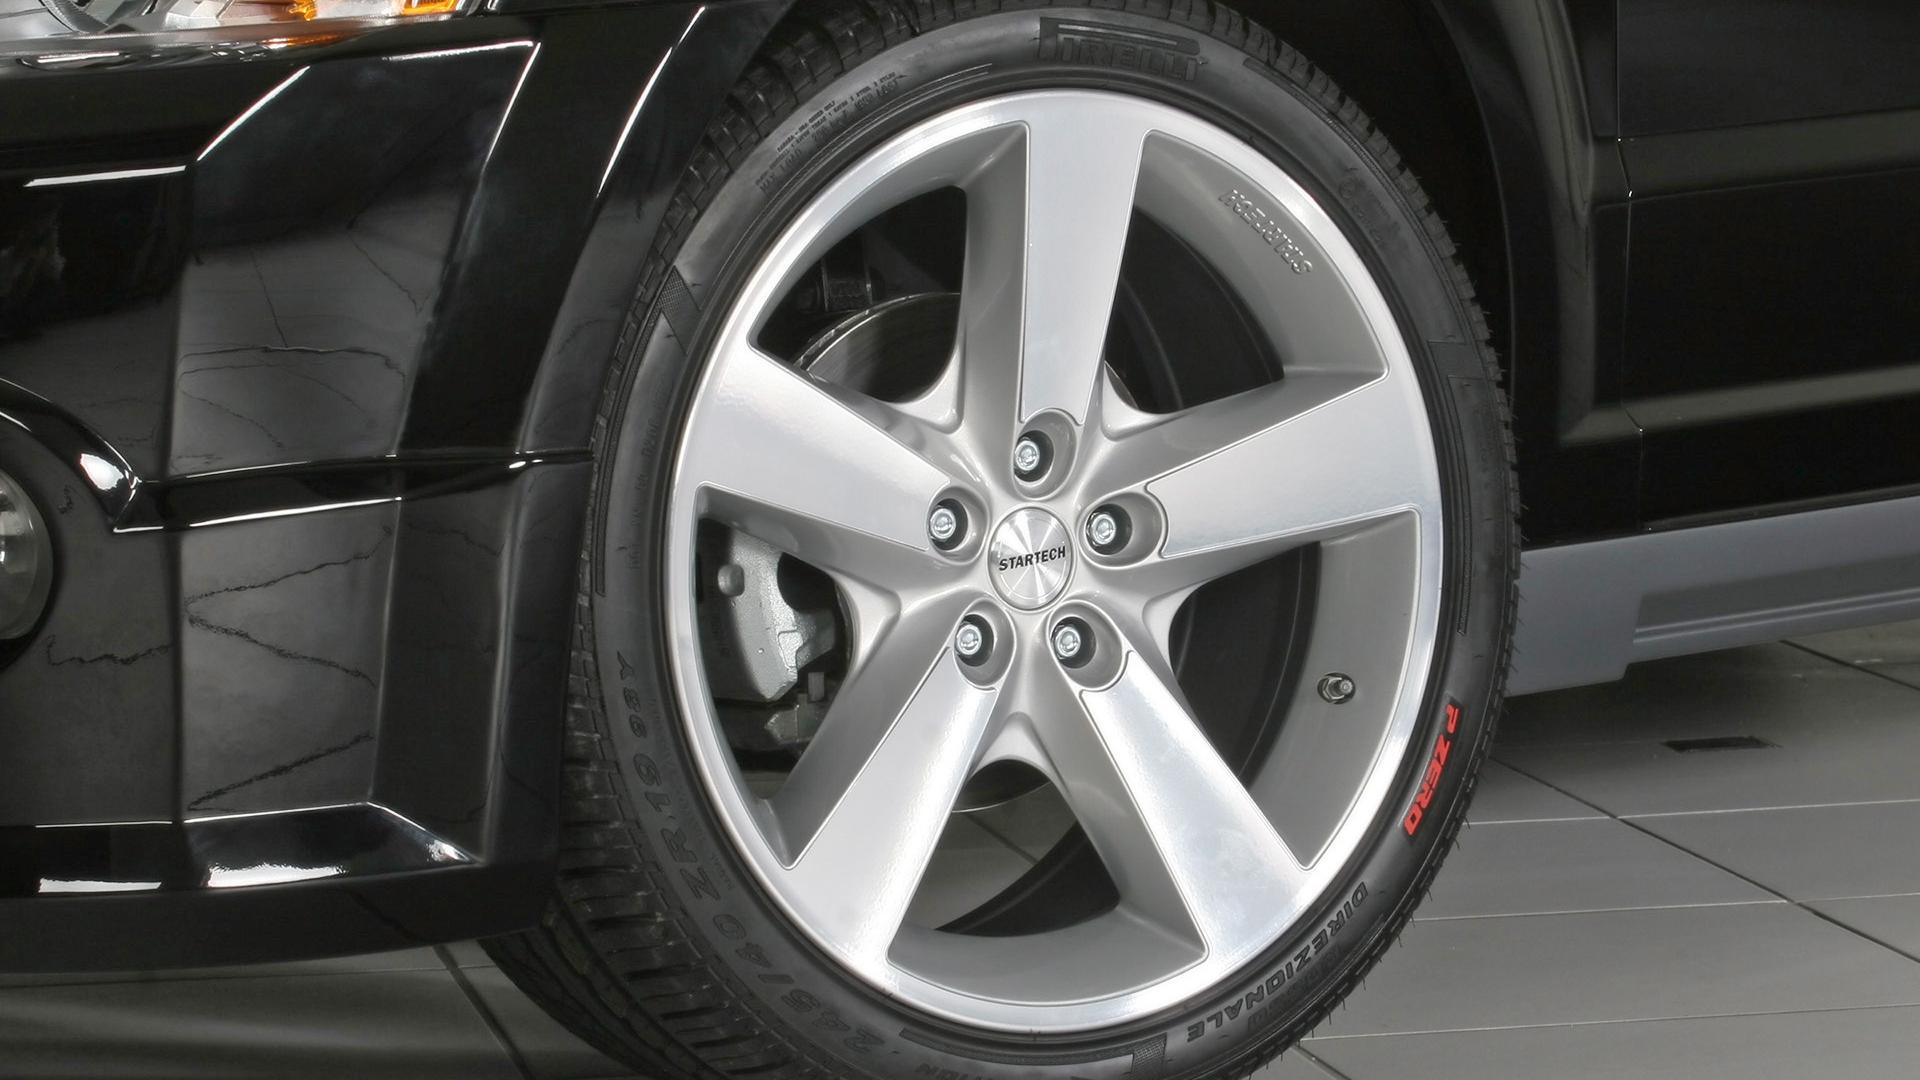 2007 Startech Dodge Caliber Wheel 1920x1080